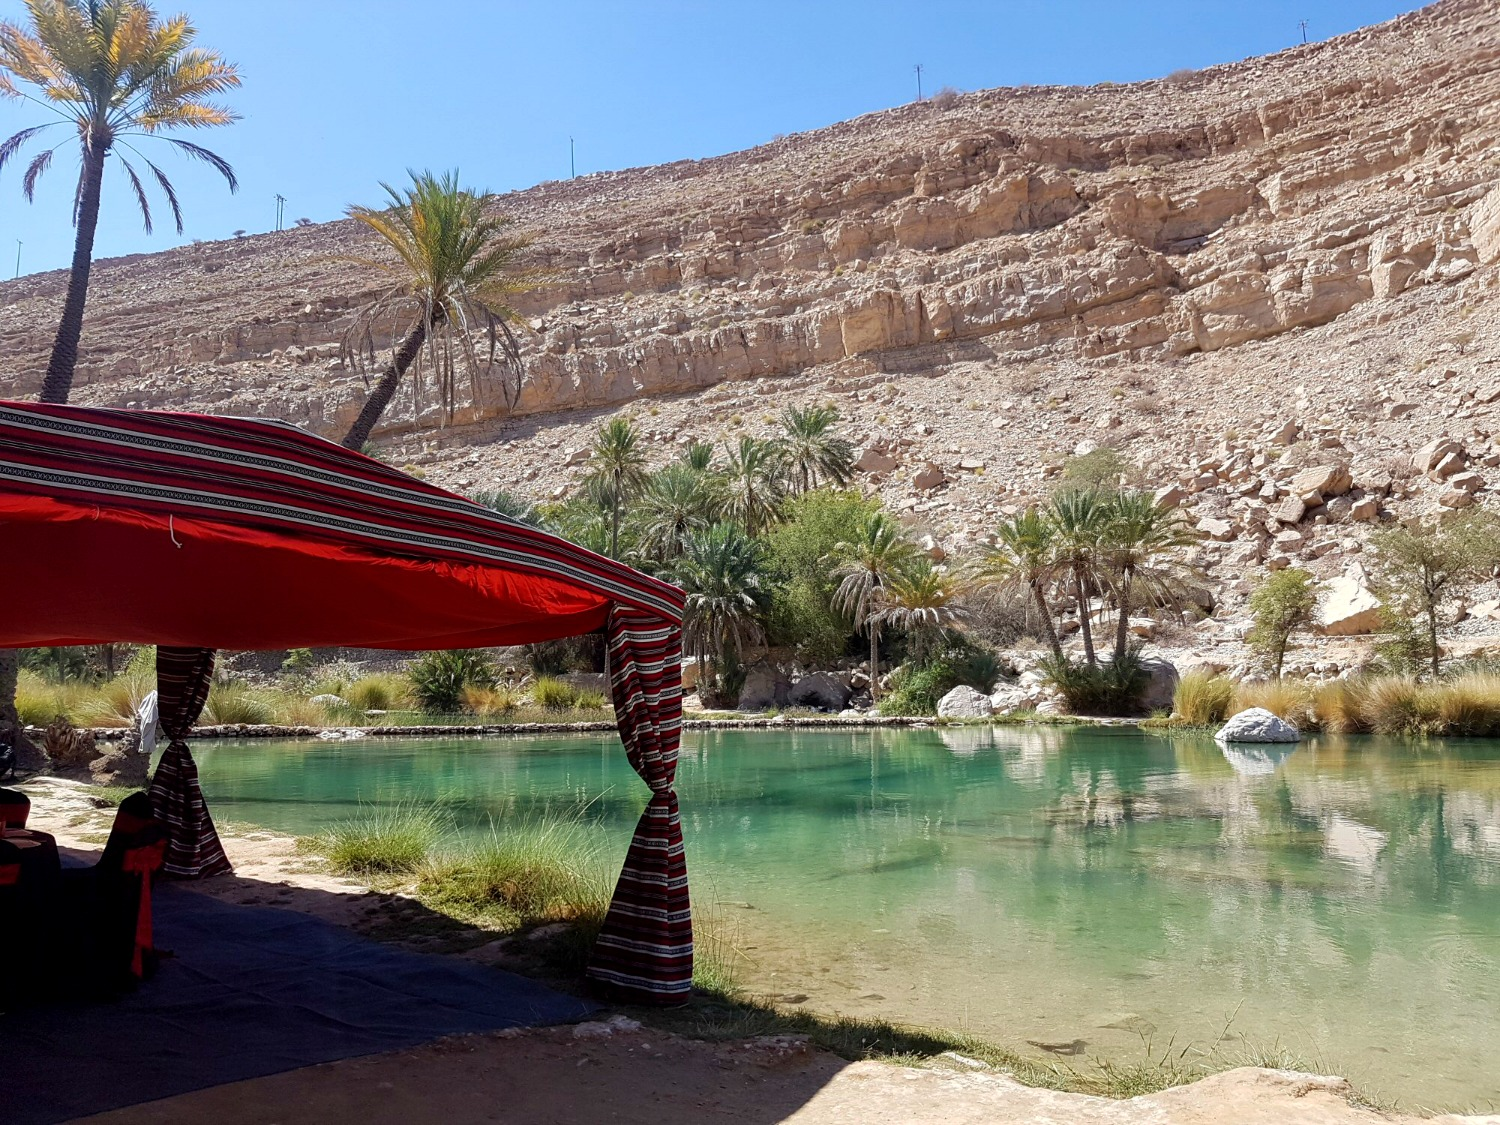 A red tent set up by the waters of Wadi Bani Khalid in the Hajar Mountains in Oman - my nine reasons to visit Oman with kids